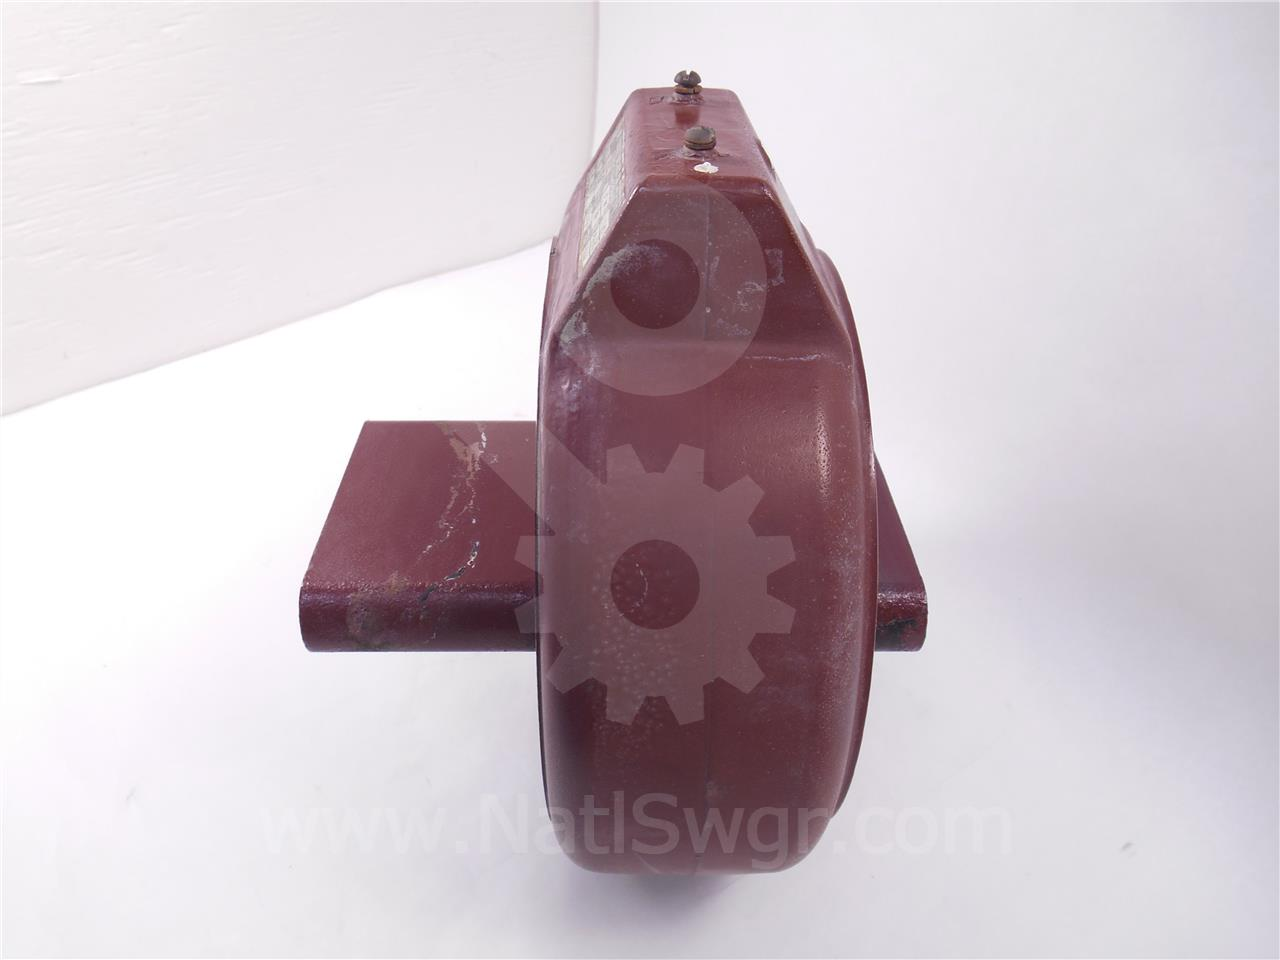 TR-15 ITE CURRENT TRANSFORMER 600:5 BUSHING TYPE